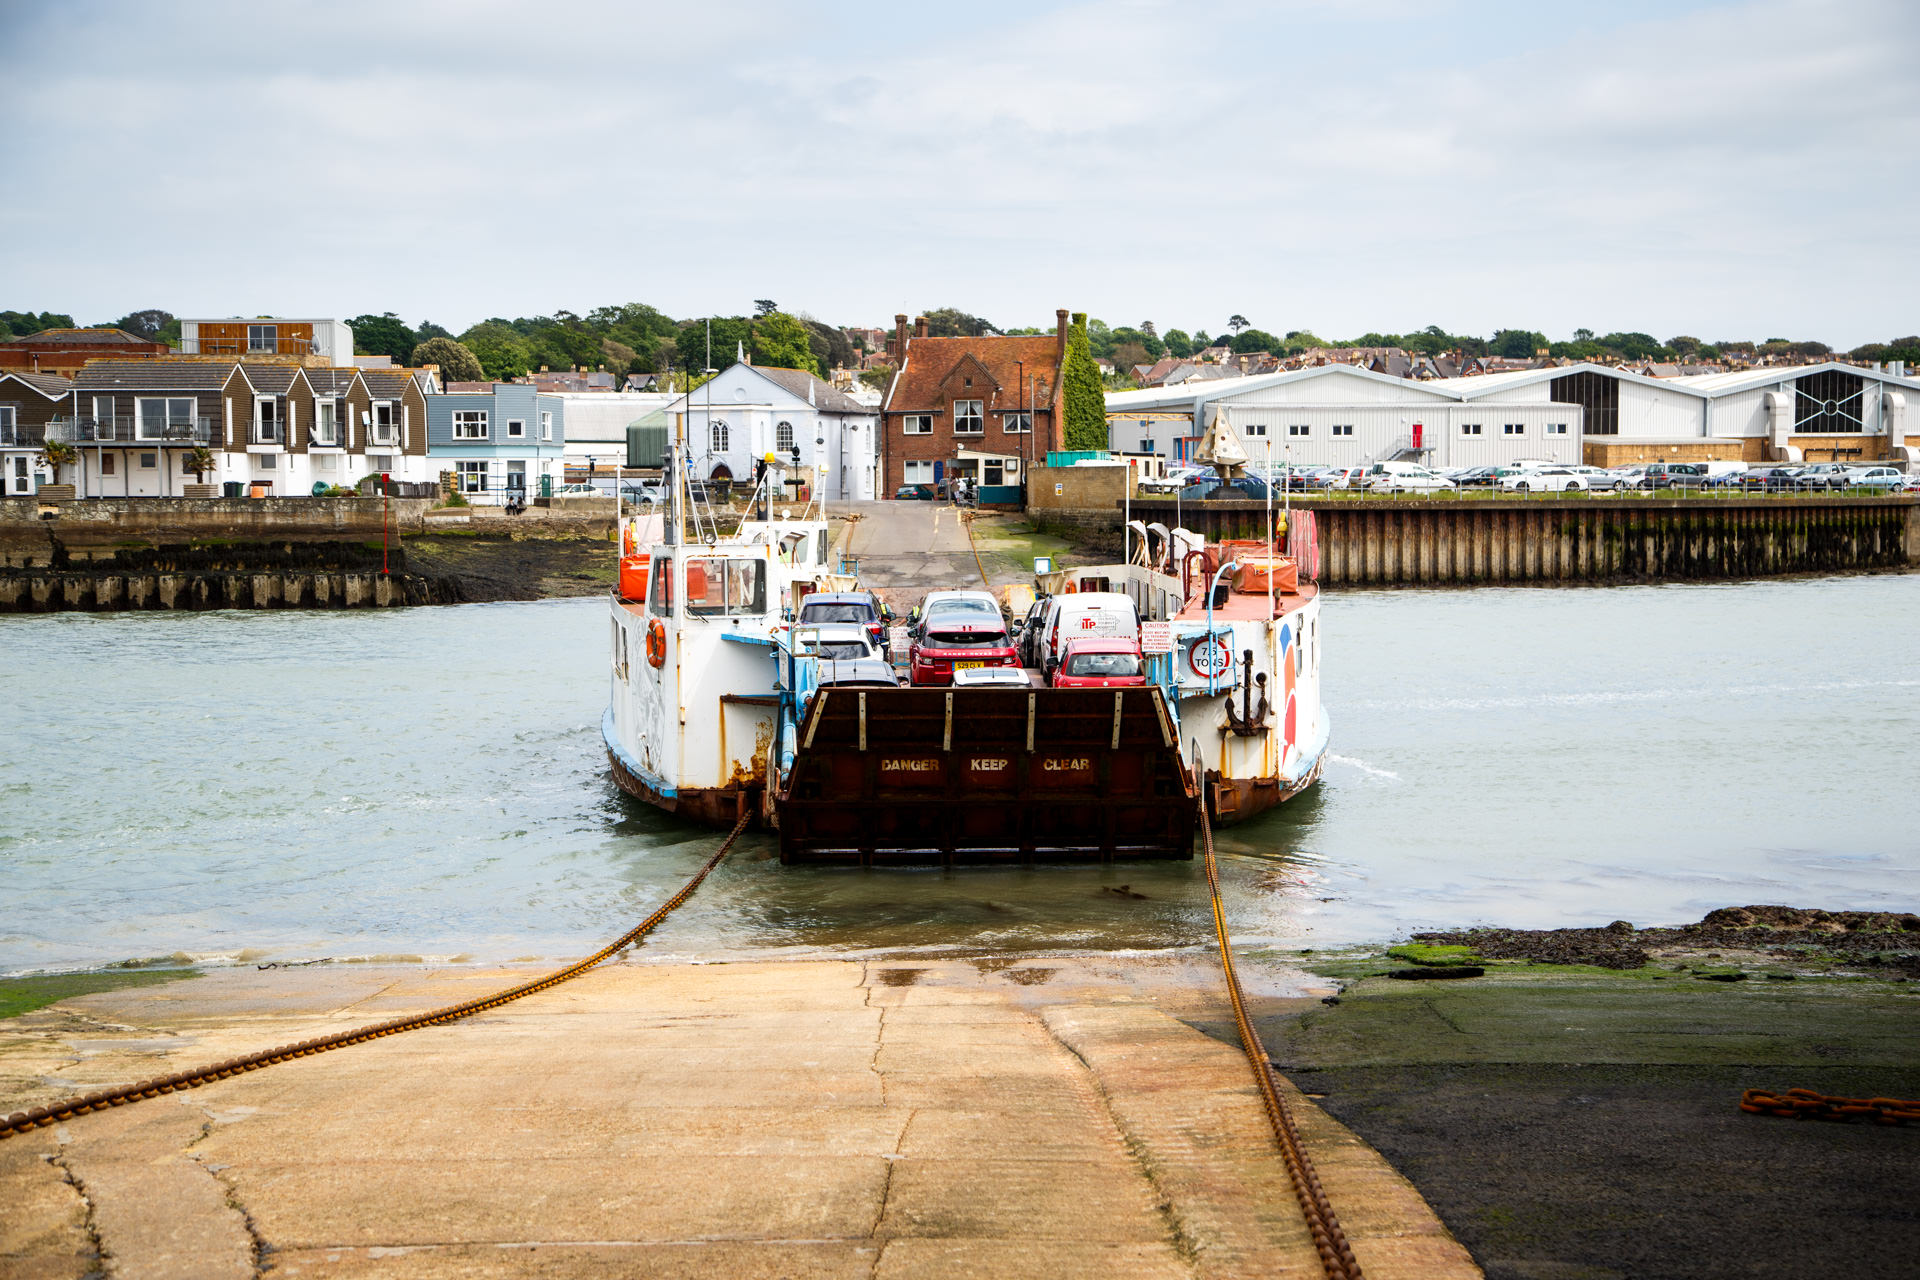 A chain ferry runs between West and East Cowes.